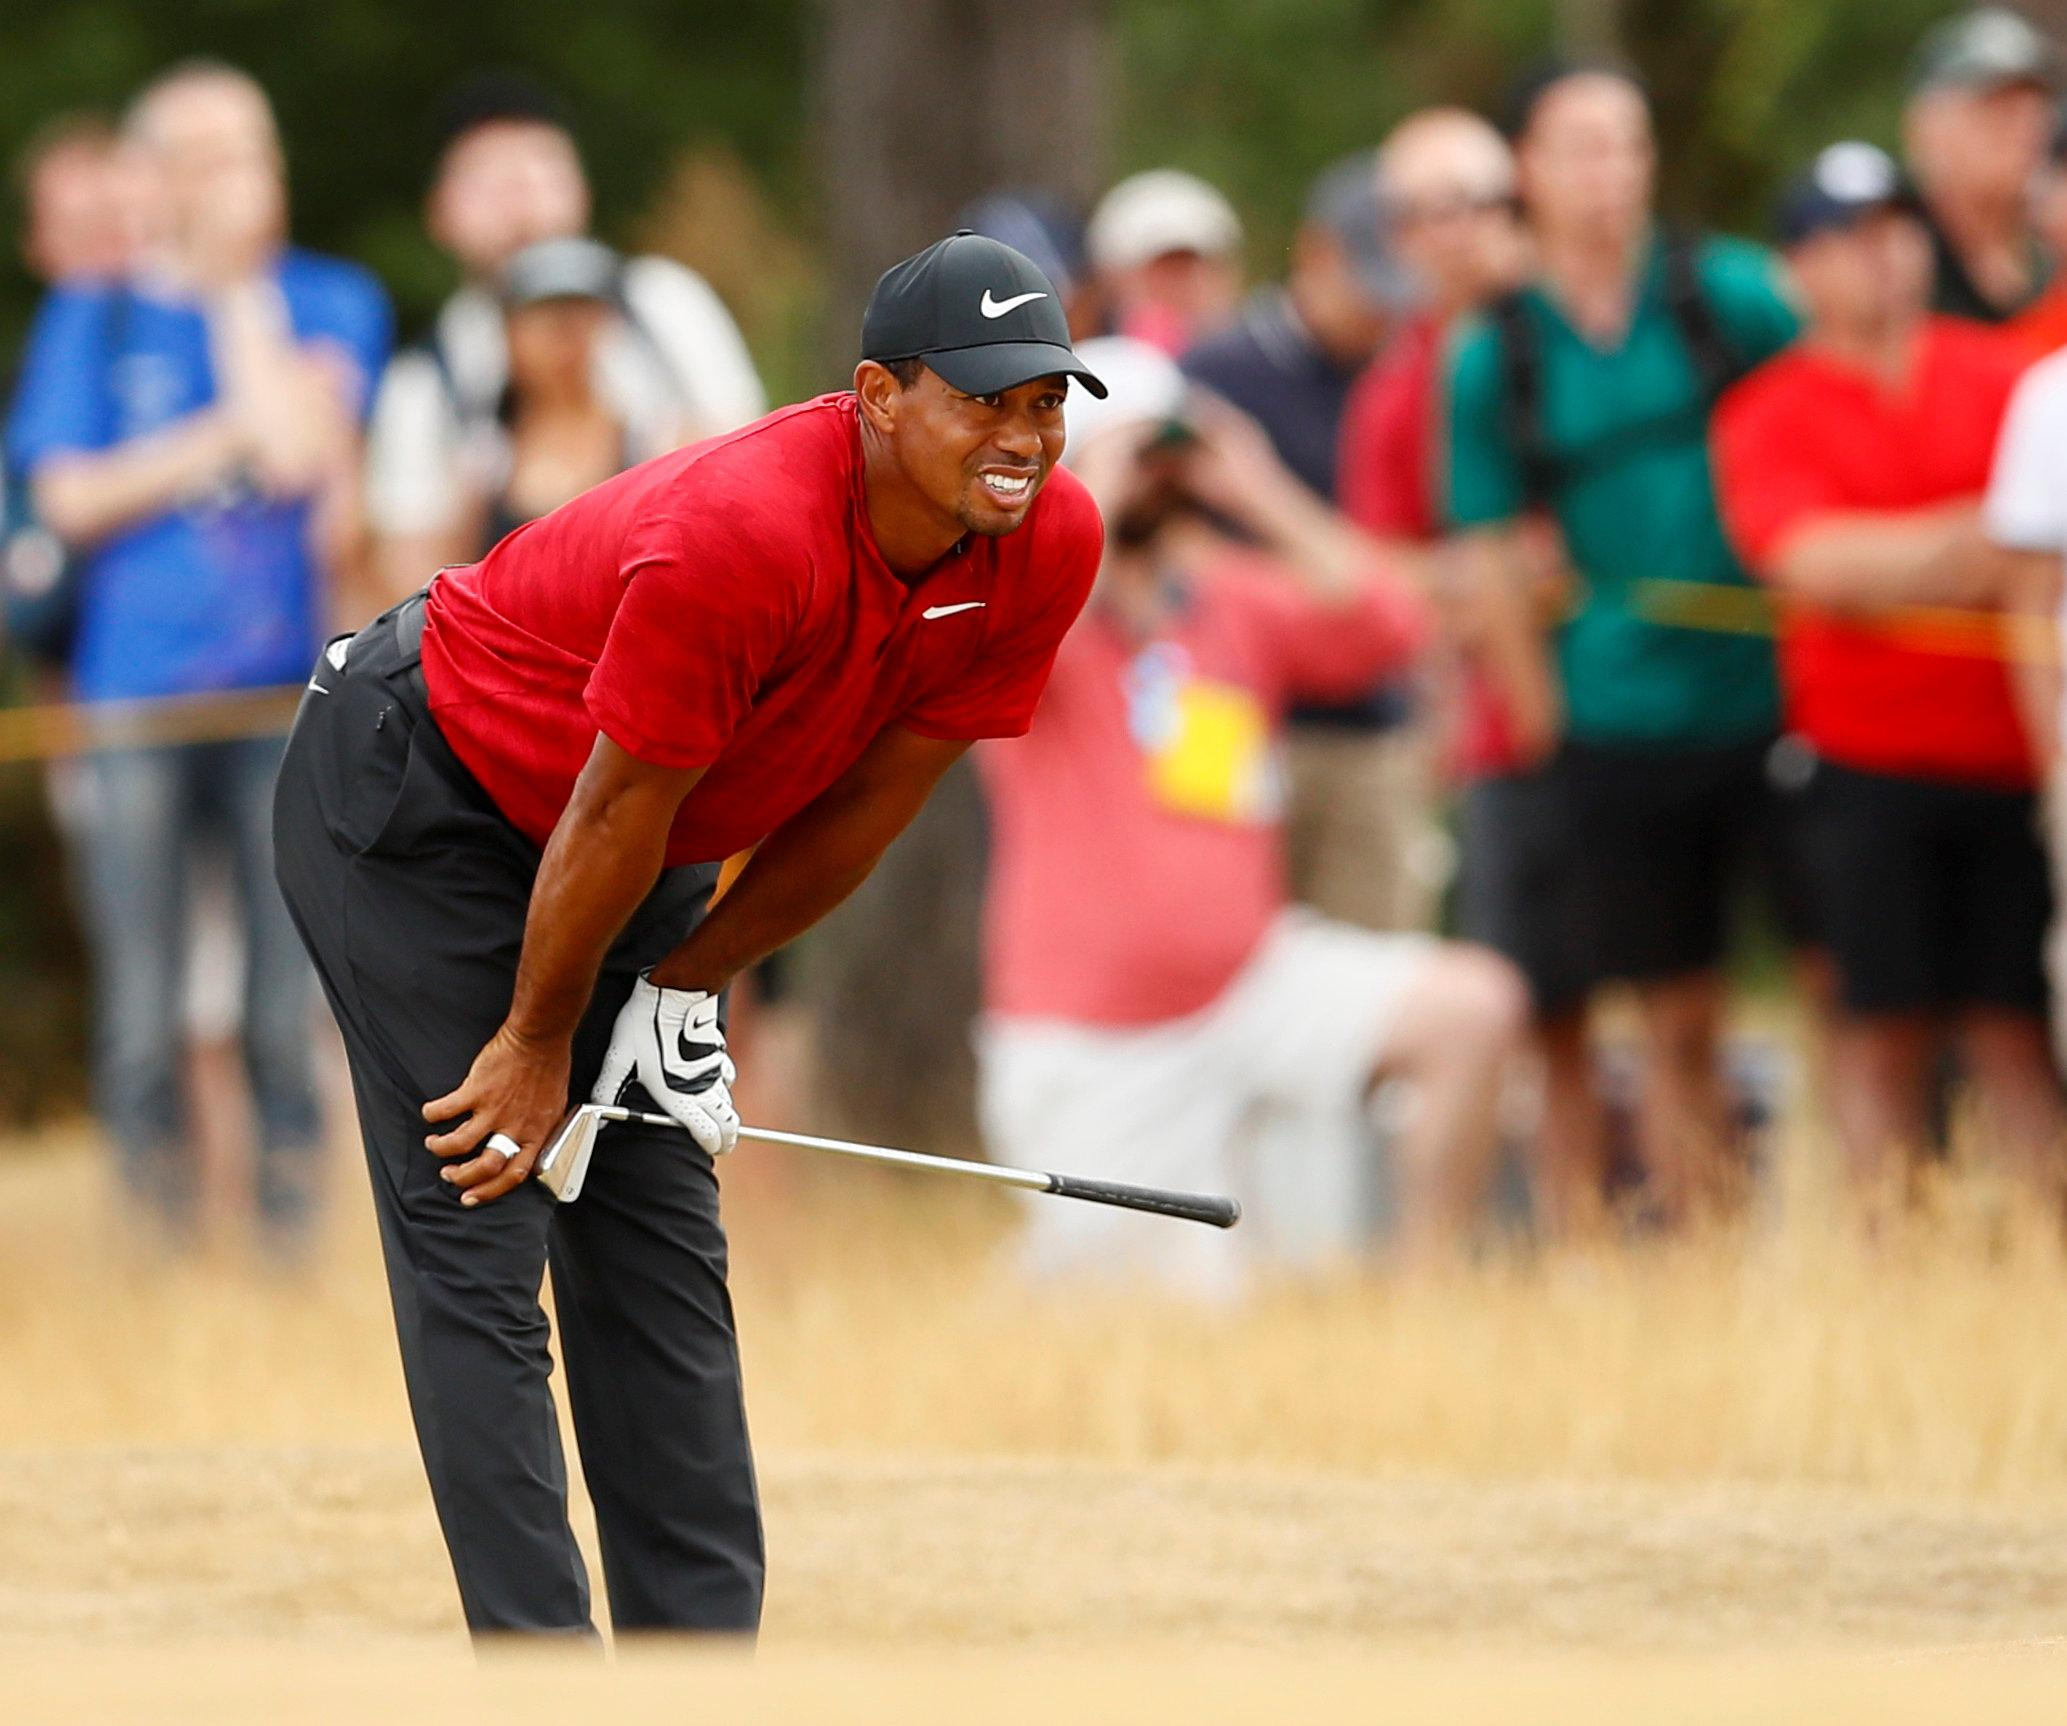 Woods, 42, remains in contention to win his first major since the US Open in 2008